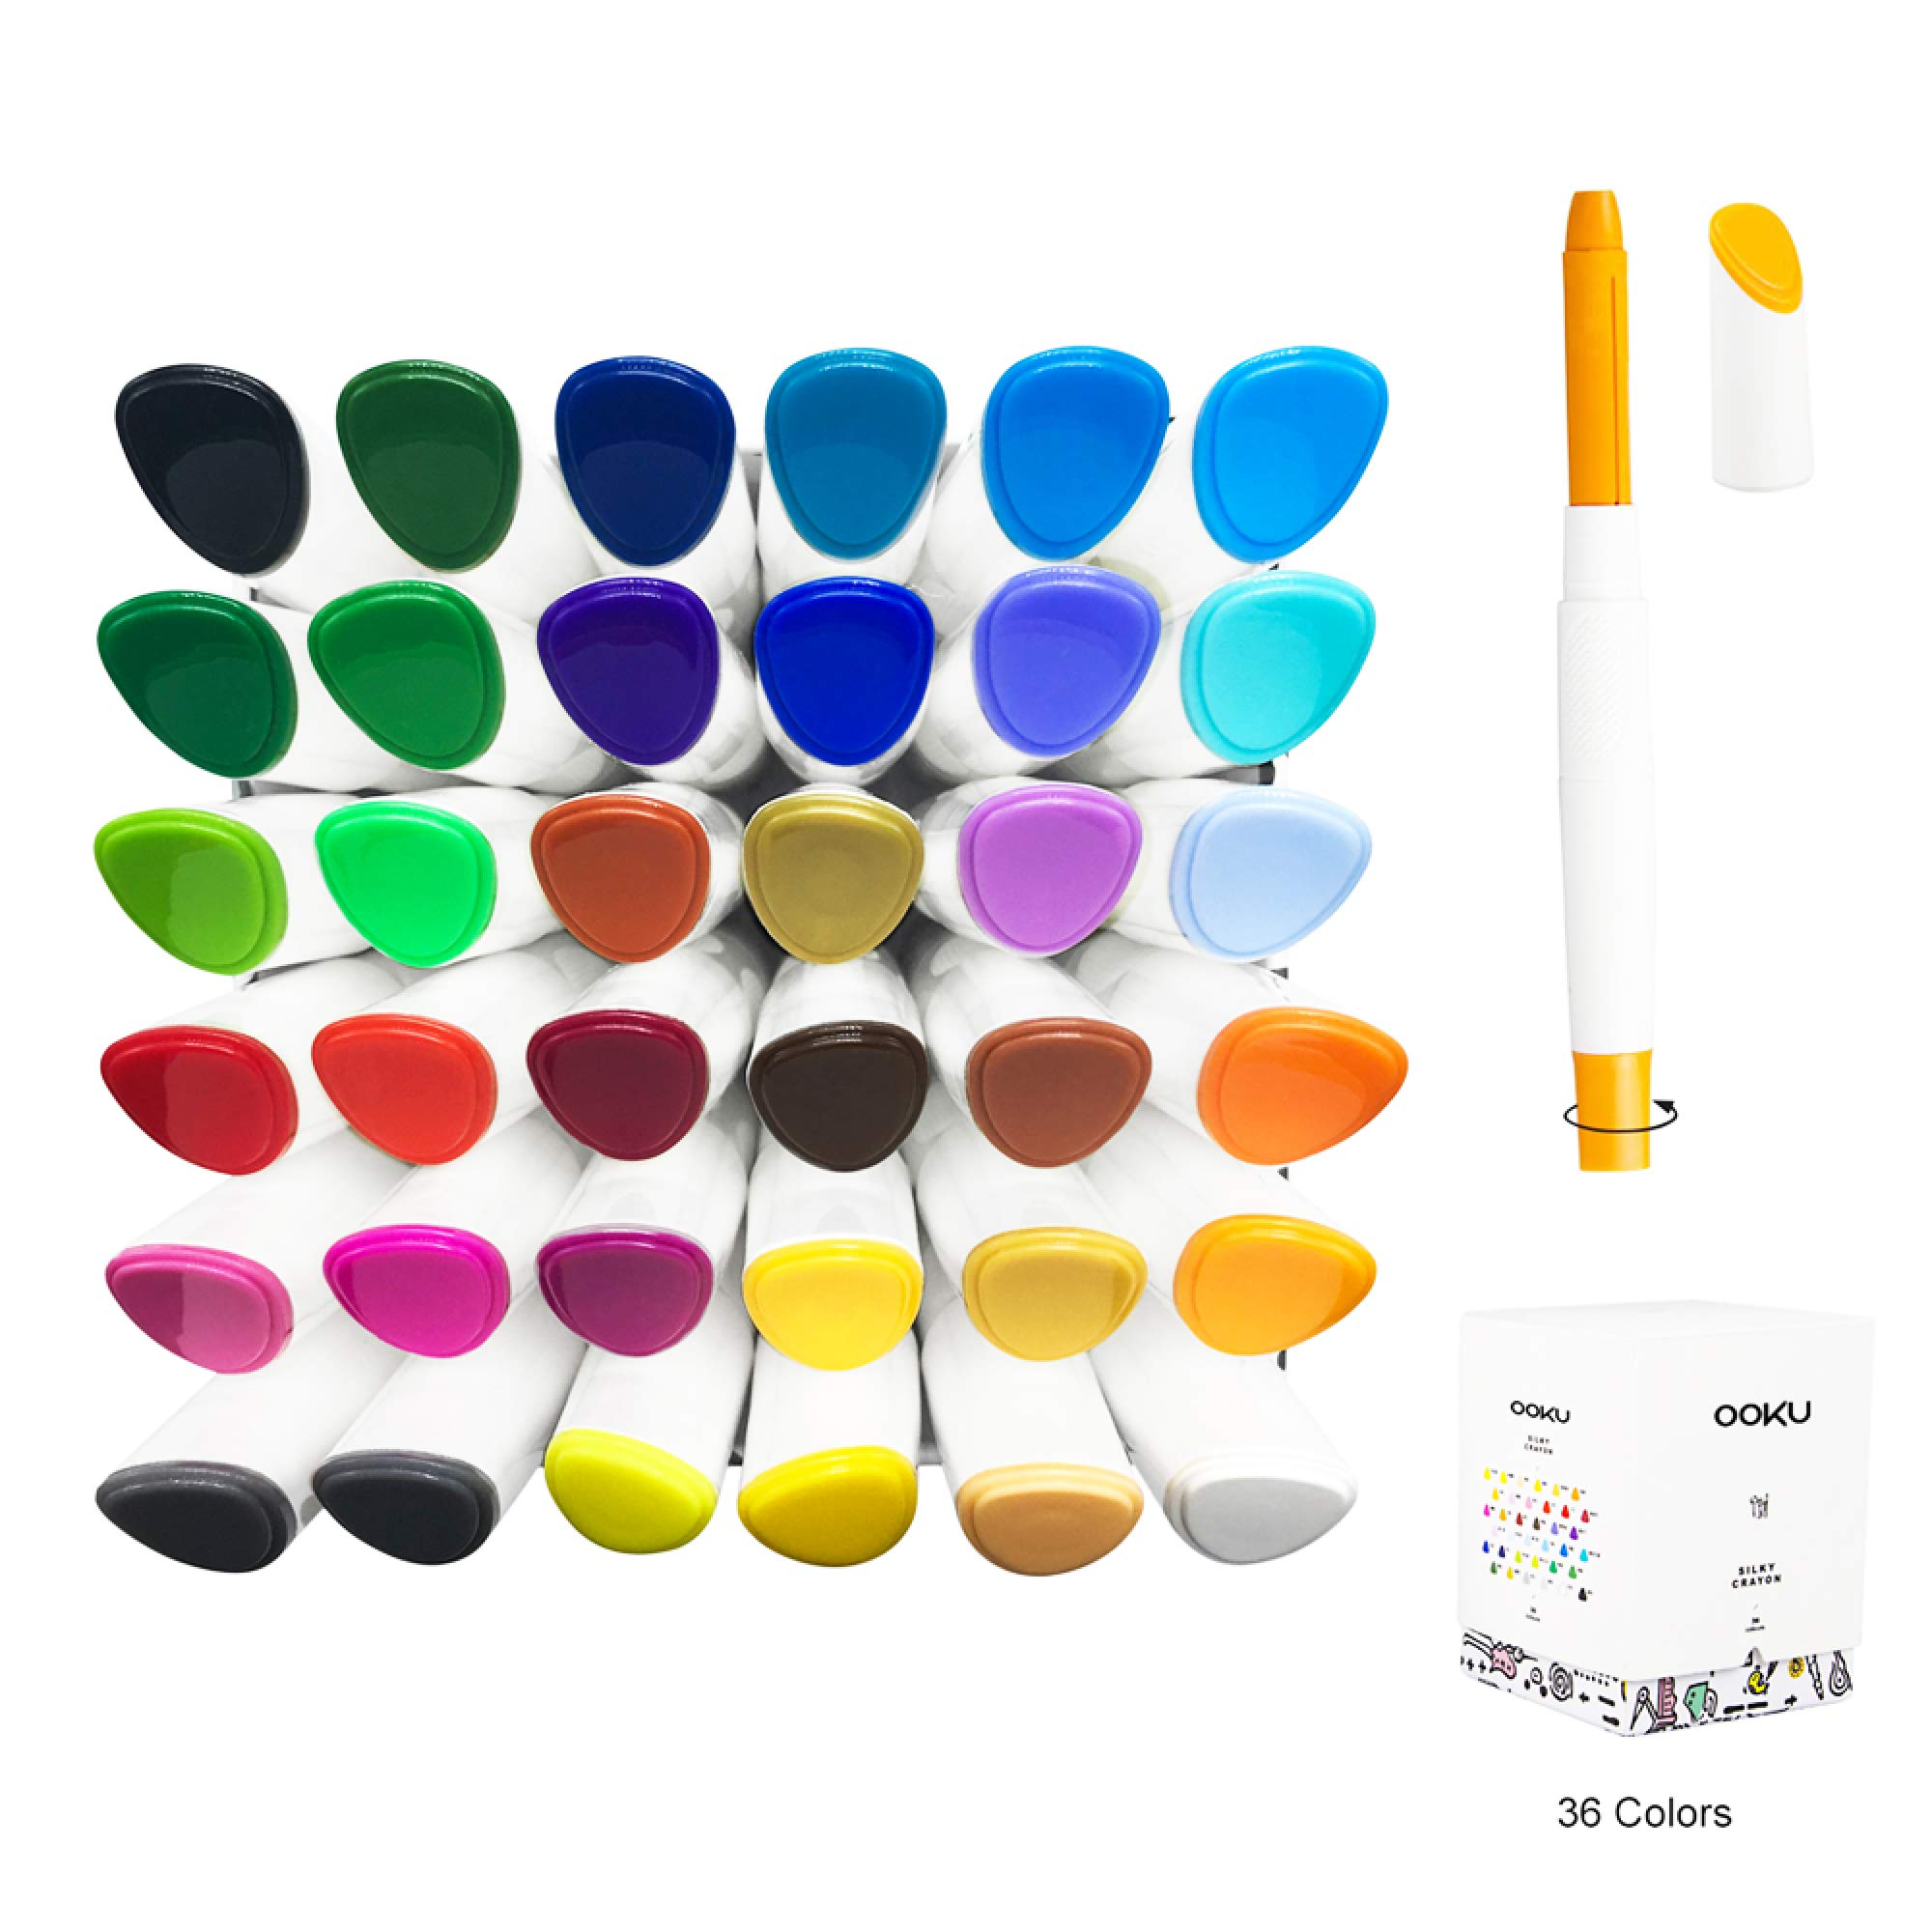 OOKU Gel Crayons 36 Colors Set - Twistable, Retractable & Washable Crayons - Non Toxic Art Supplies for Adults/Kids/Toddlers - 3 in 1 Crayon, Pastels, Watercolors Effect